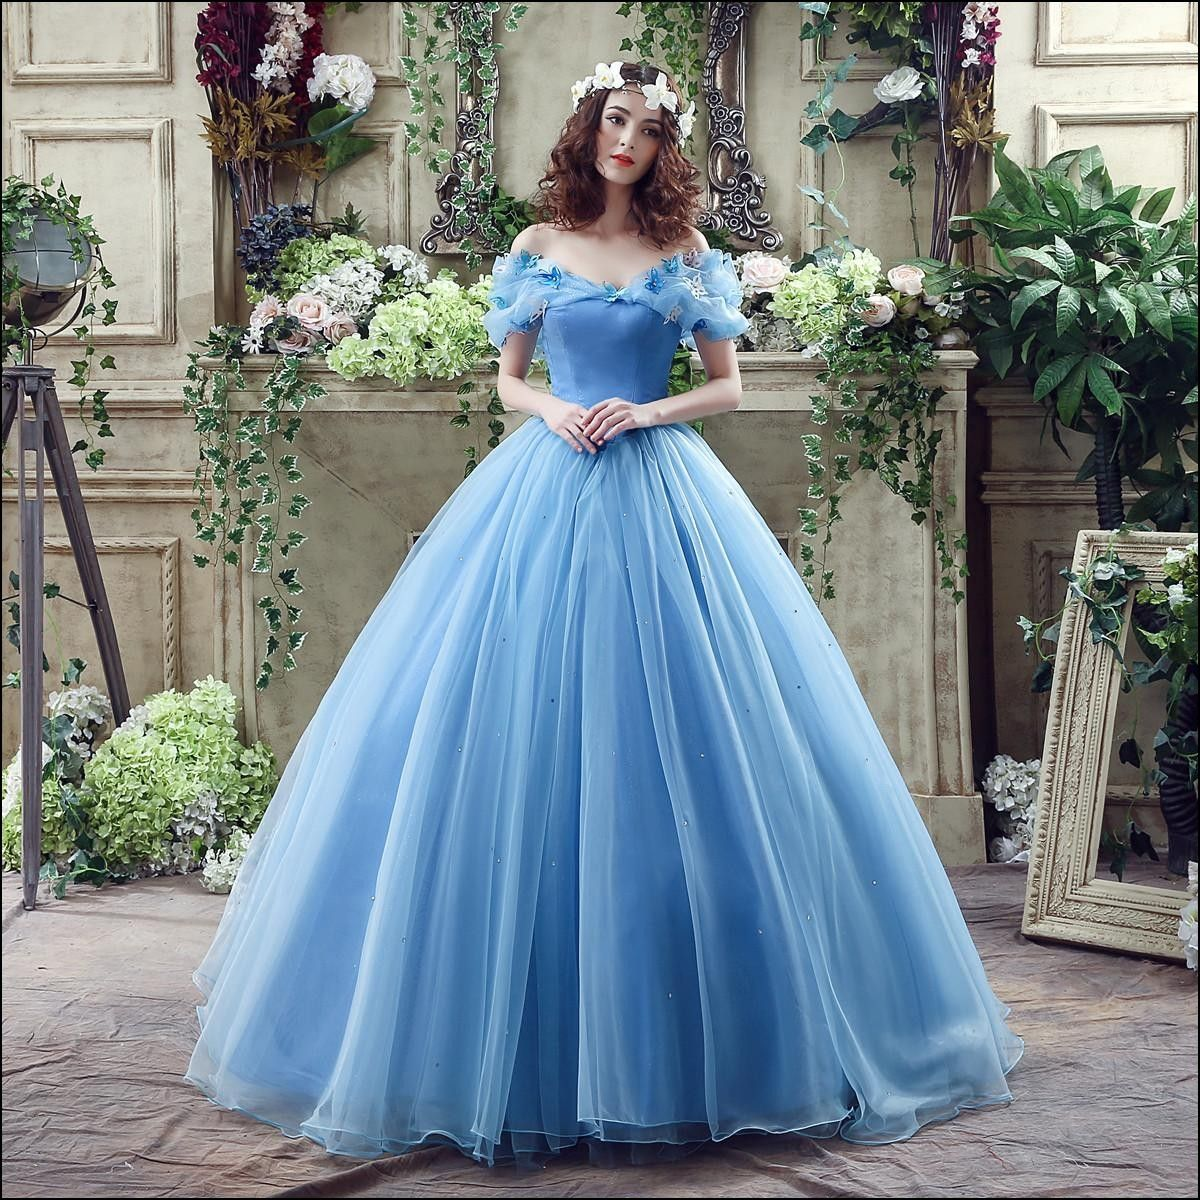 Masquerade Ball Gowns for Rent